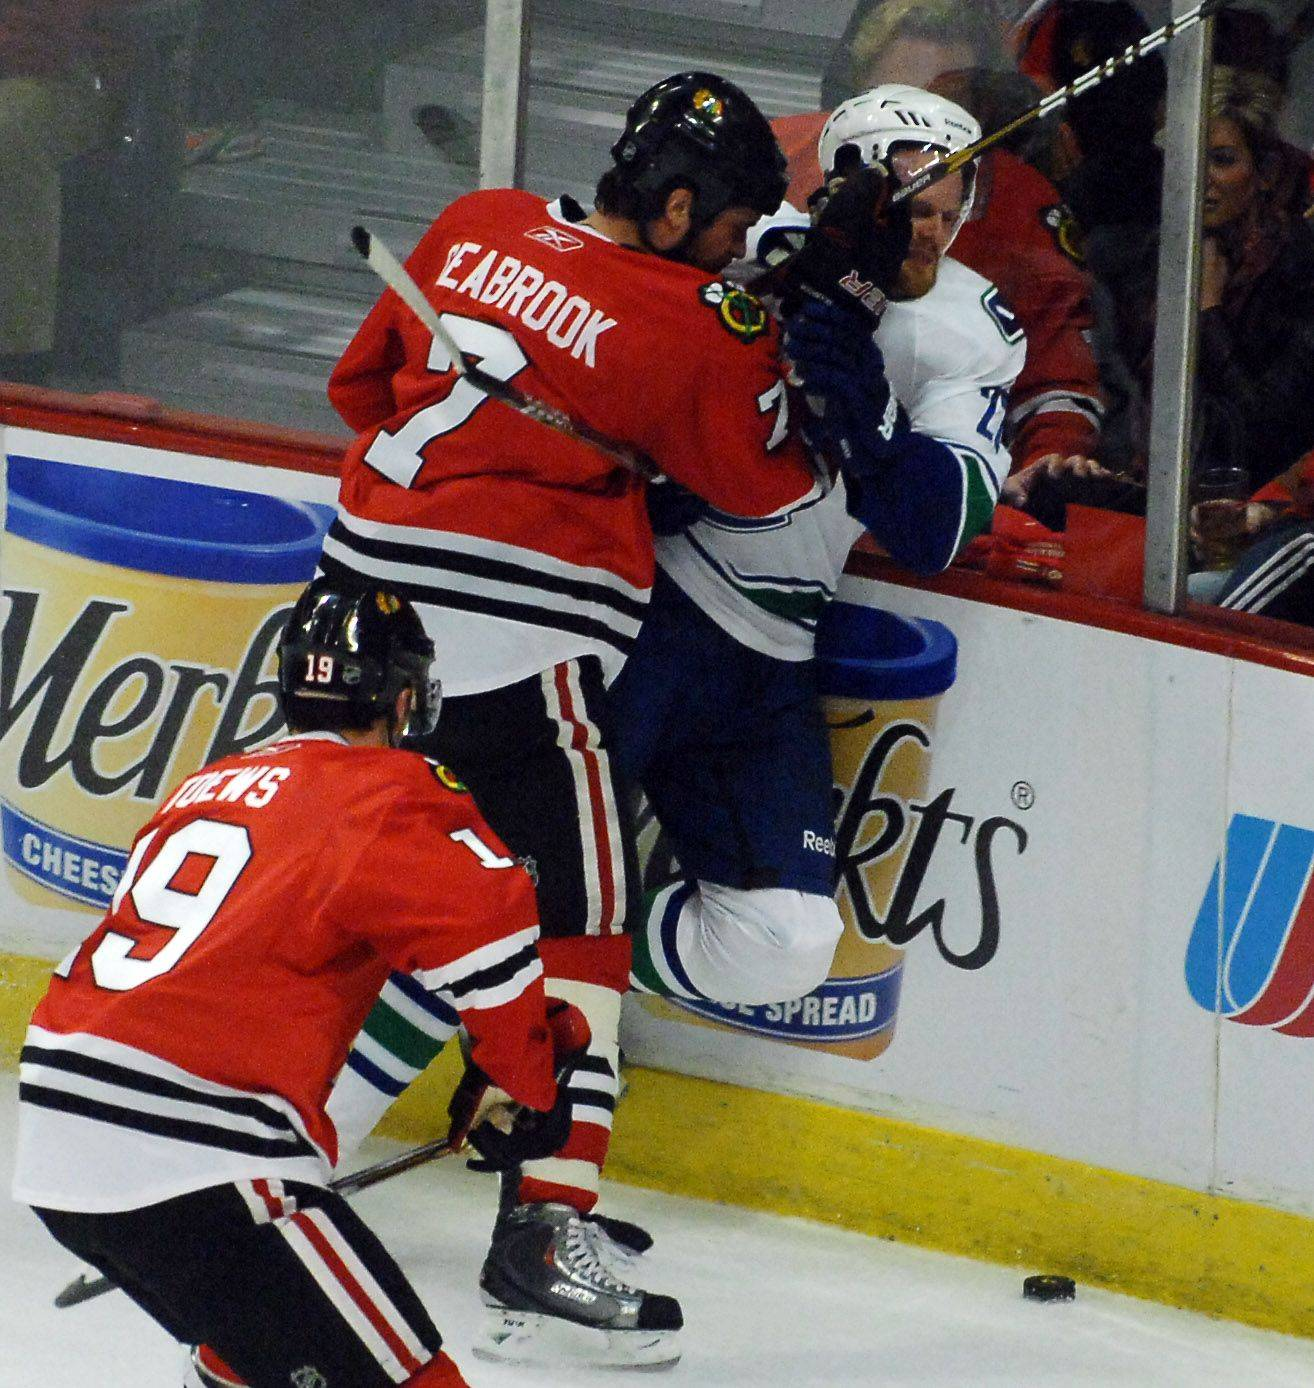 Rick West/rwest@dailyherald.com Chicago Blackhawks defenseman Brent Seabrook (7) checks Vancouver Canucks left wing Daniel Sedin (22) during Game Three of the NHL Western Conference Quarterfinals Sunday at the United Center in Chicago.